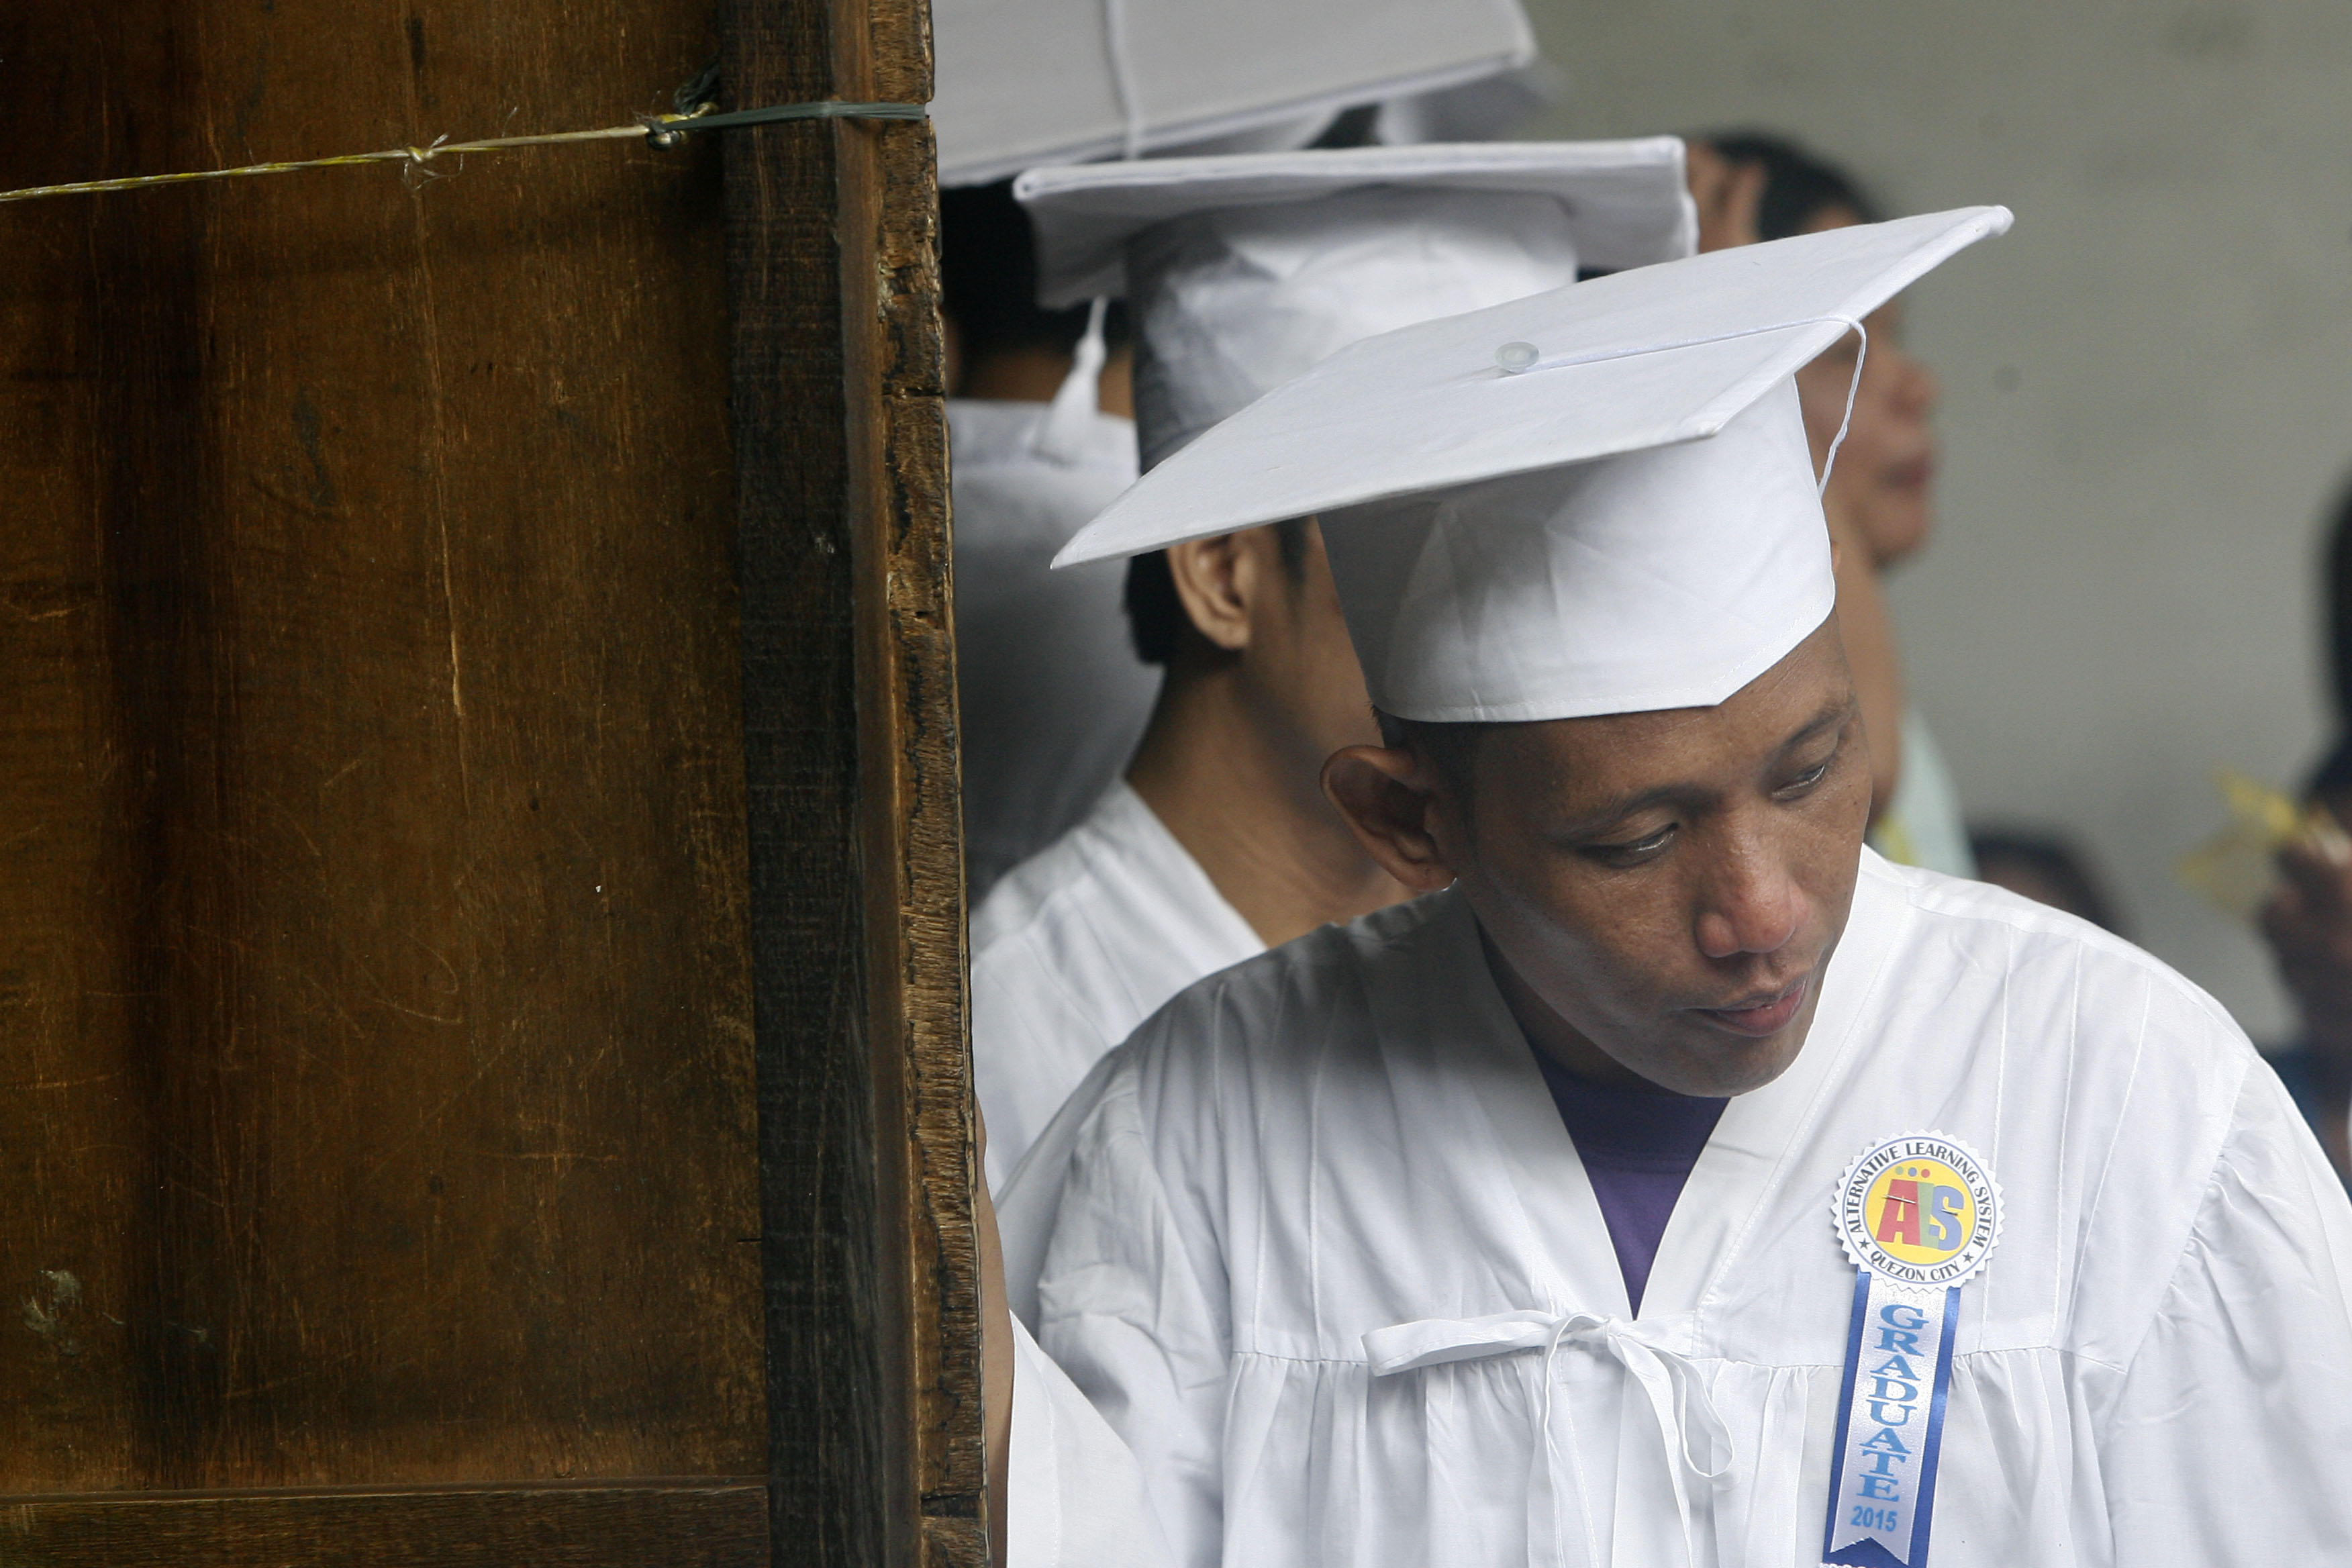 Julius Ceniza stands in front of the line, being the only elementary level graduate in the batch.